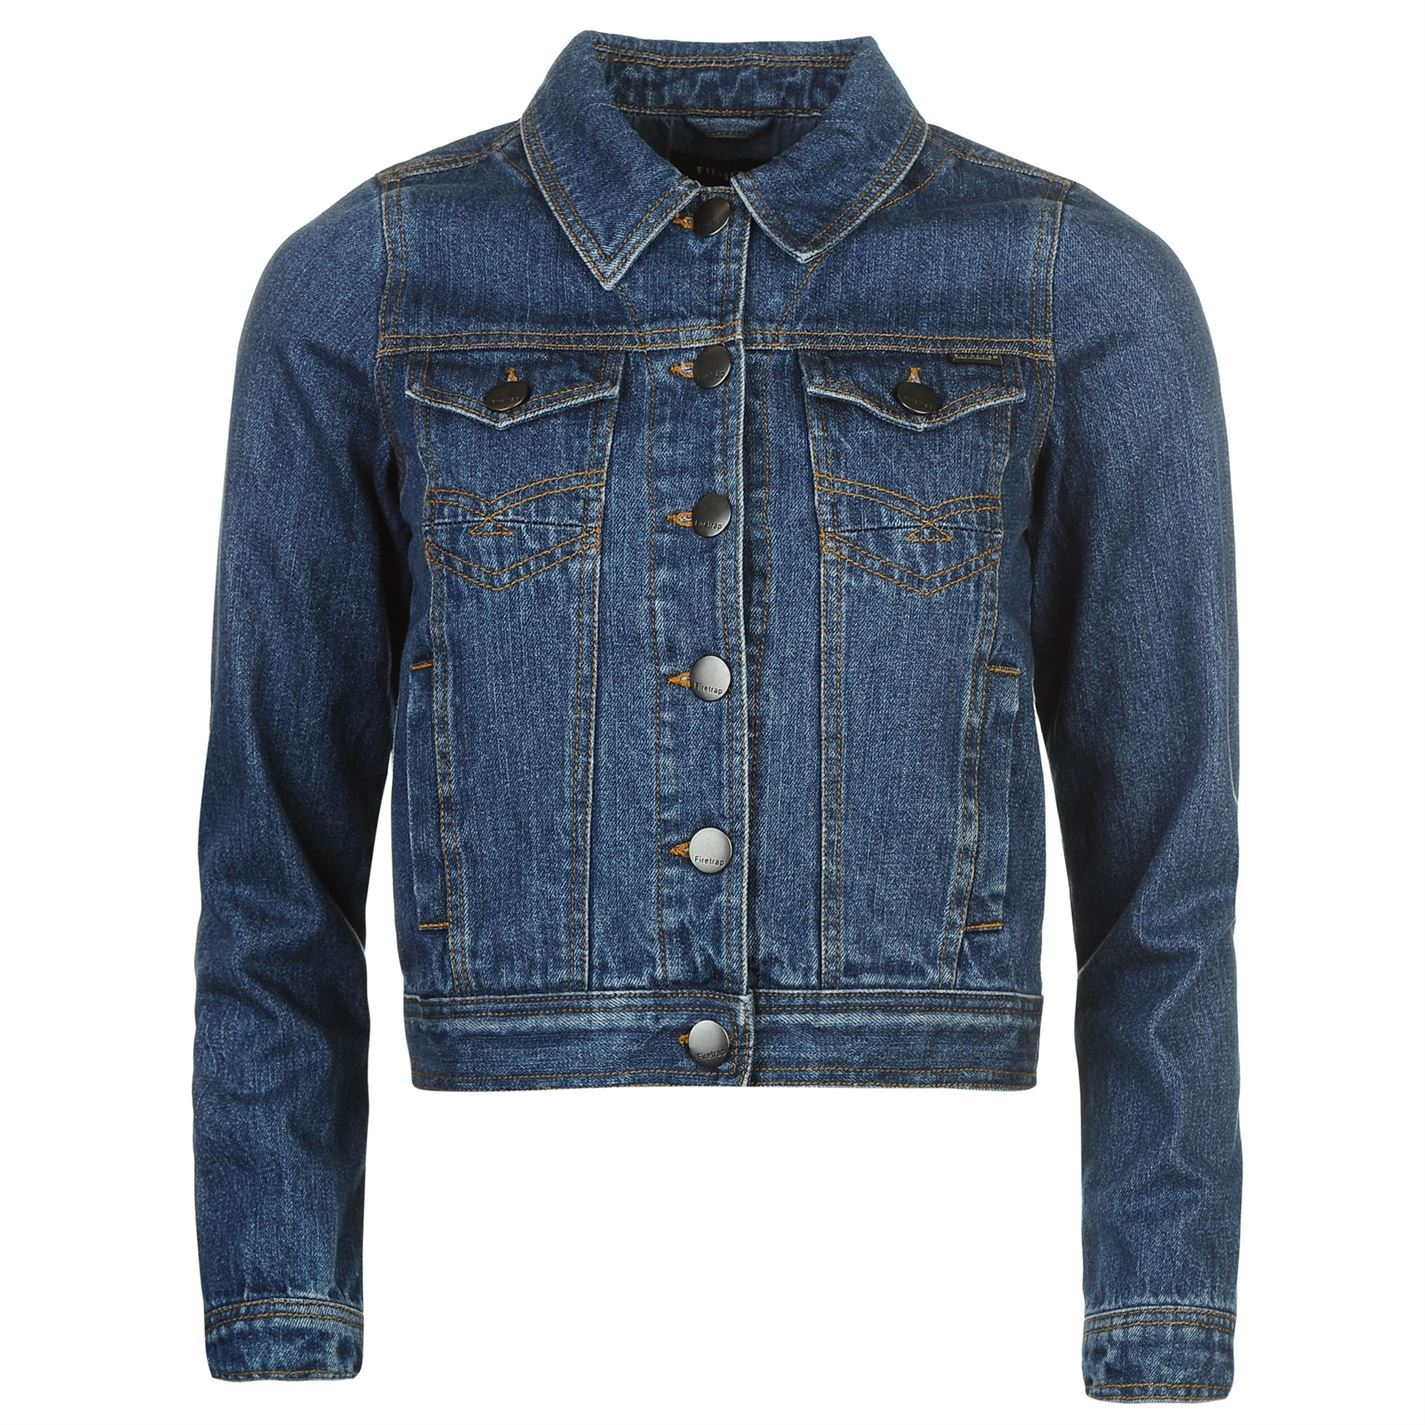 23083338d0f4f Details about Firetrap Womens Cropped Denim Jacket New